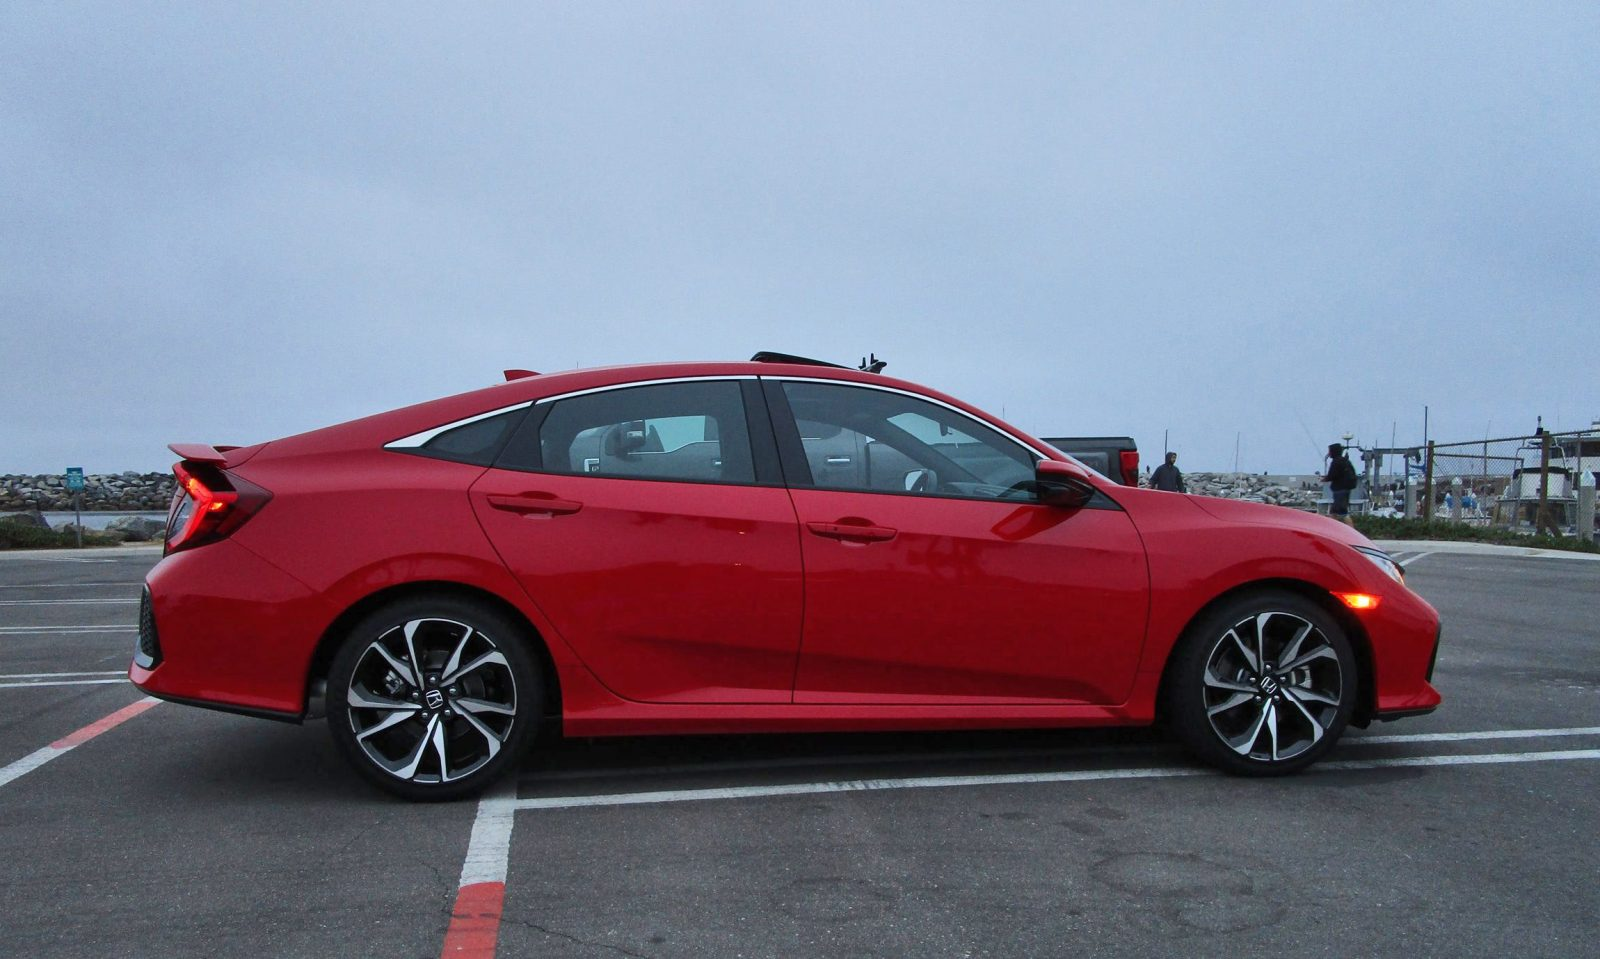 2017 honda civic si sedan road test review by ben lewis for Si honda civic